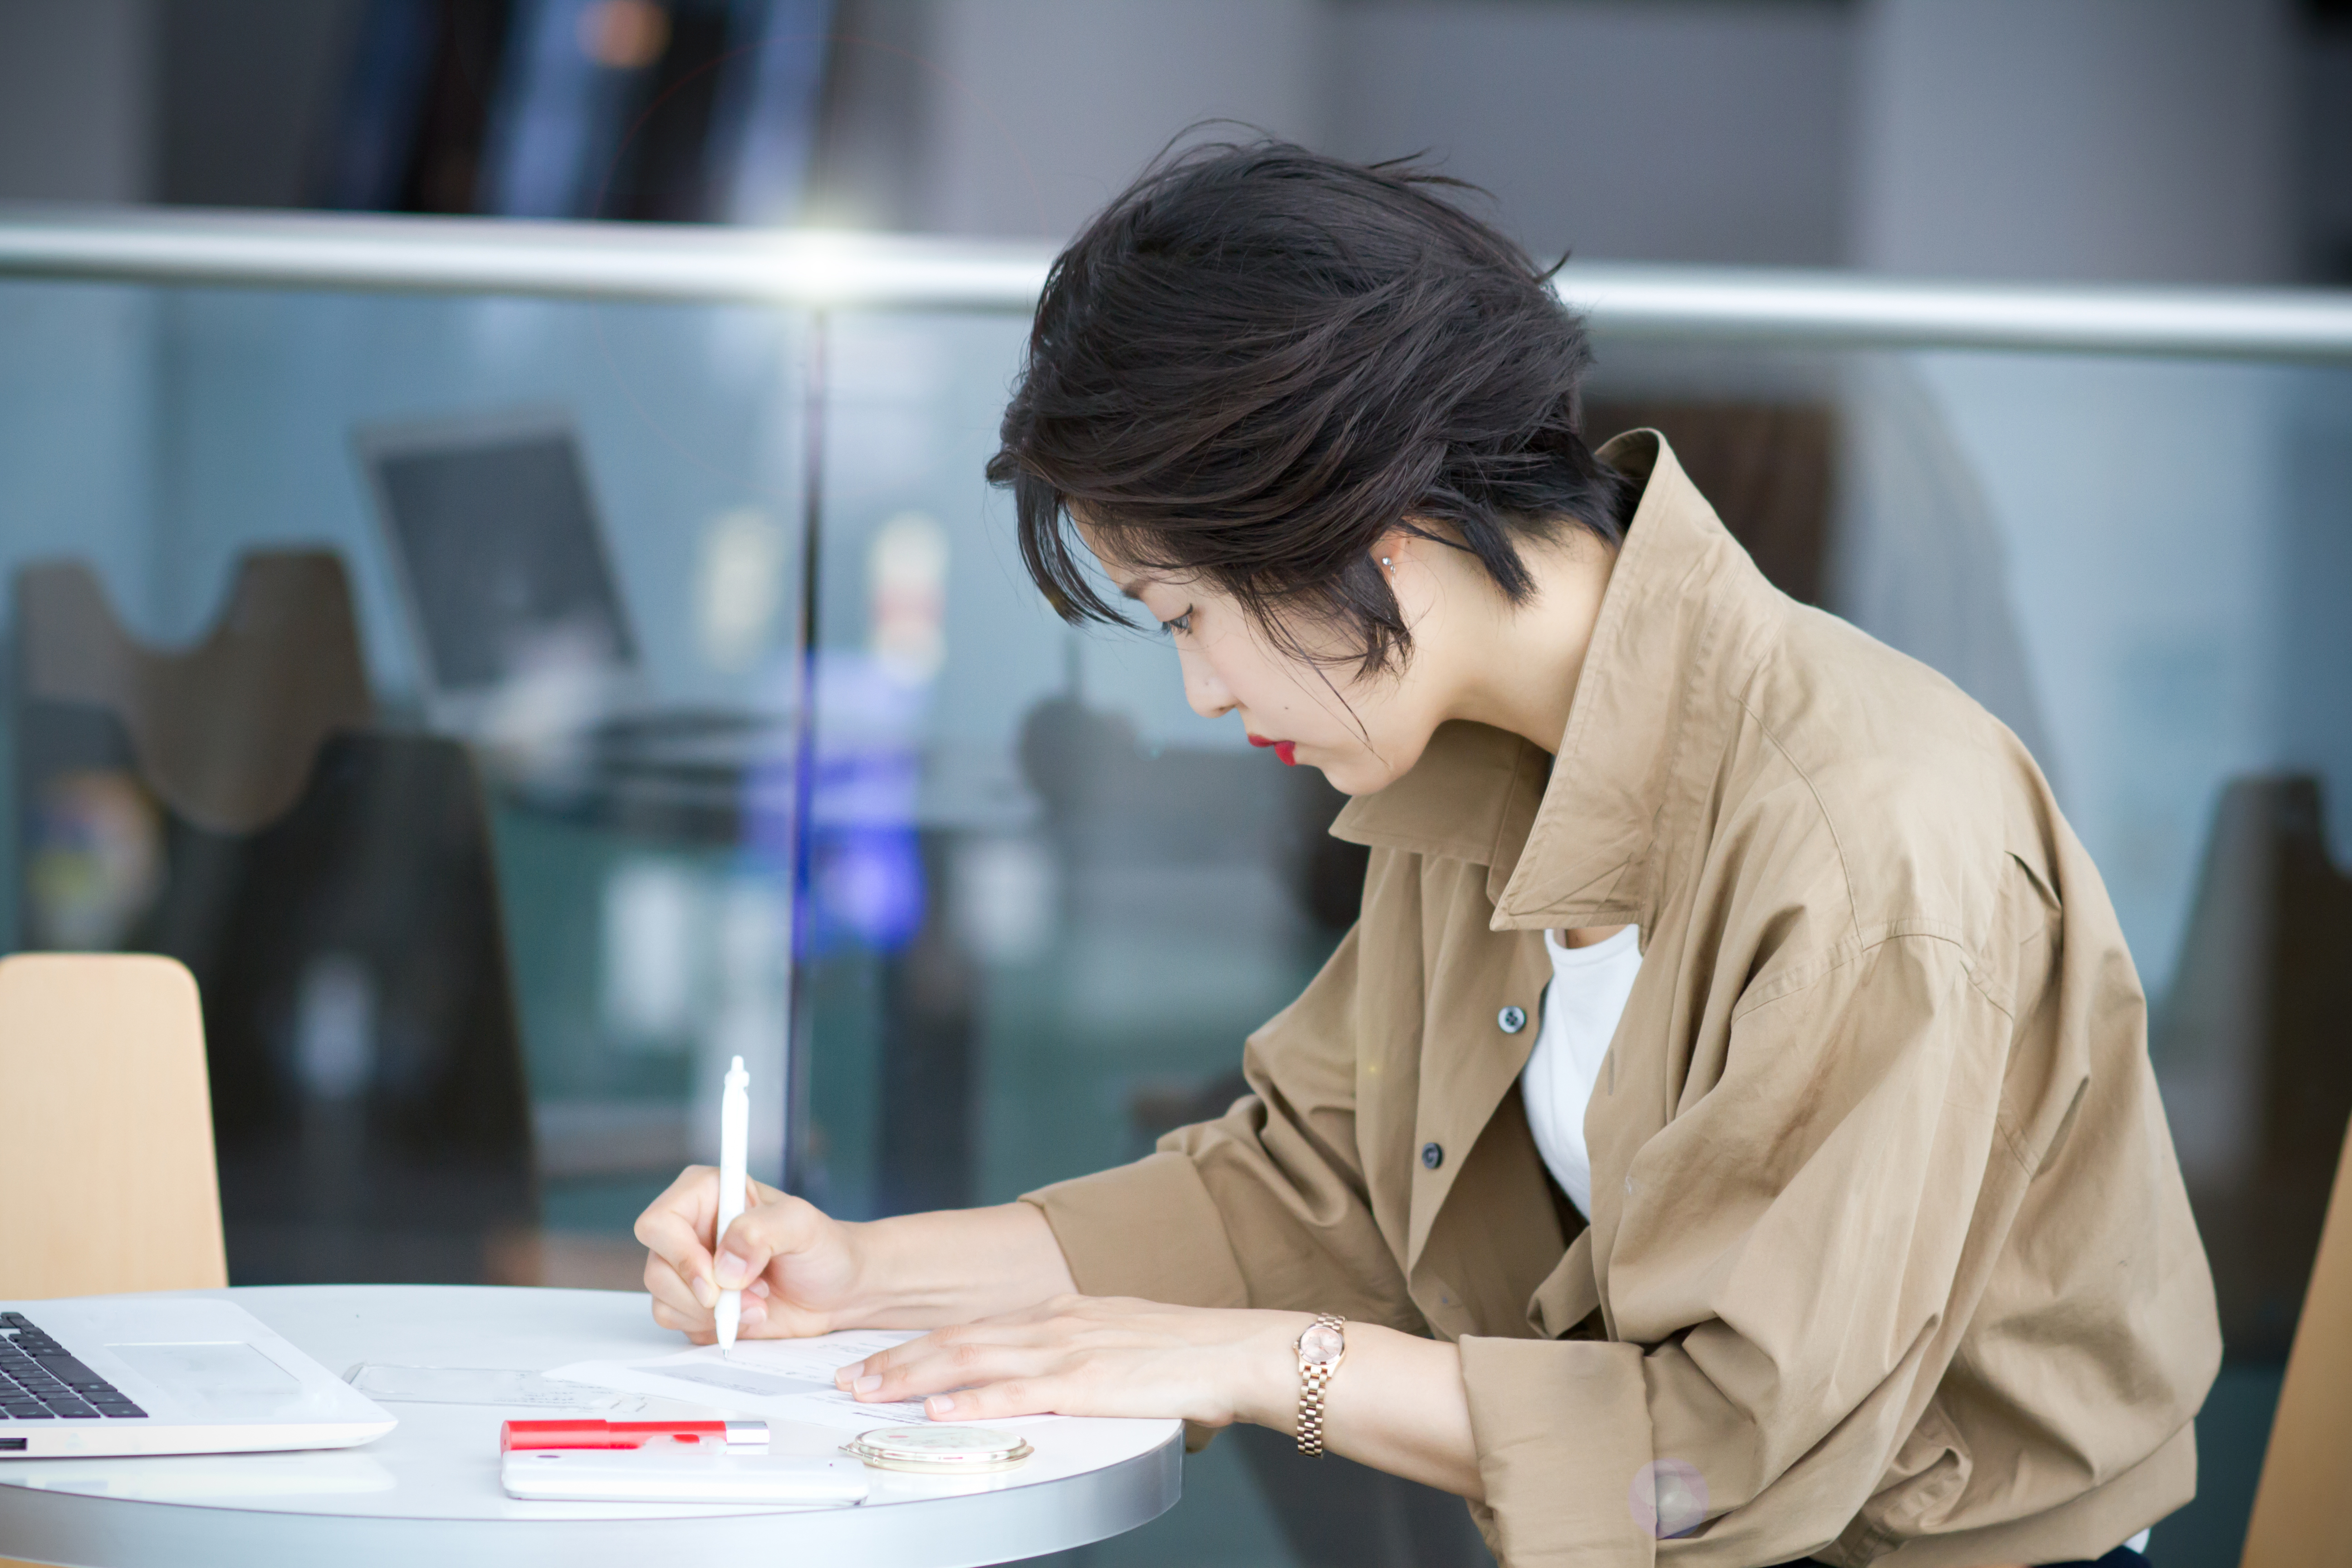 Woman taking notes at her desk.